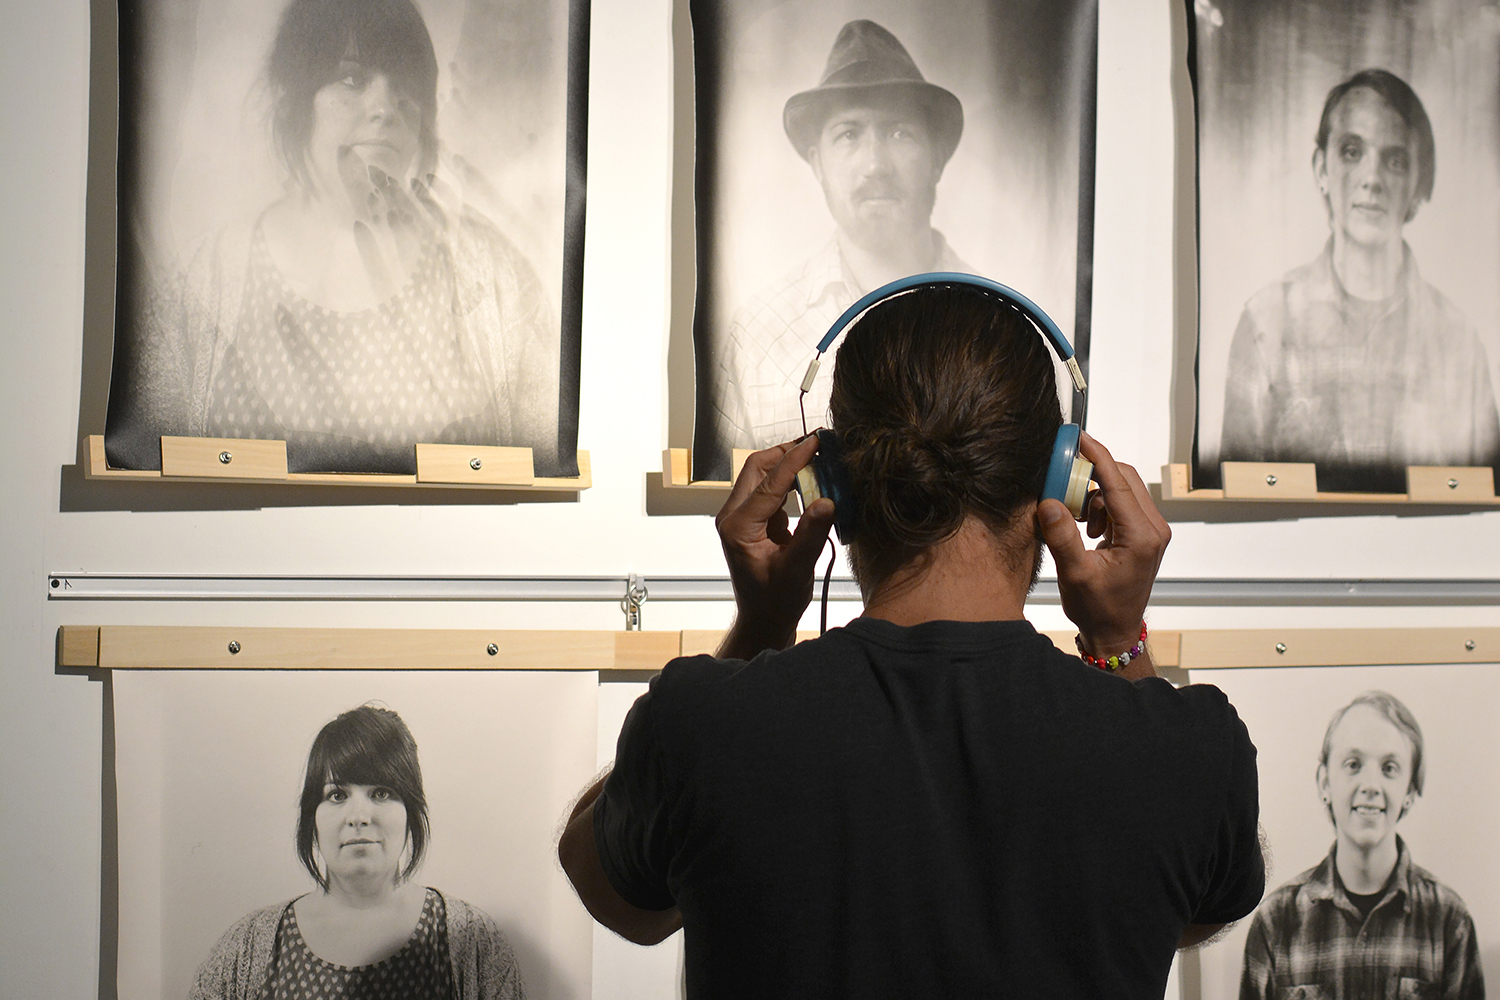 A person spends some time looking at the portraits and listening to a oral history recording.